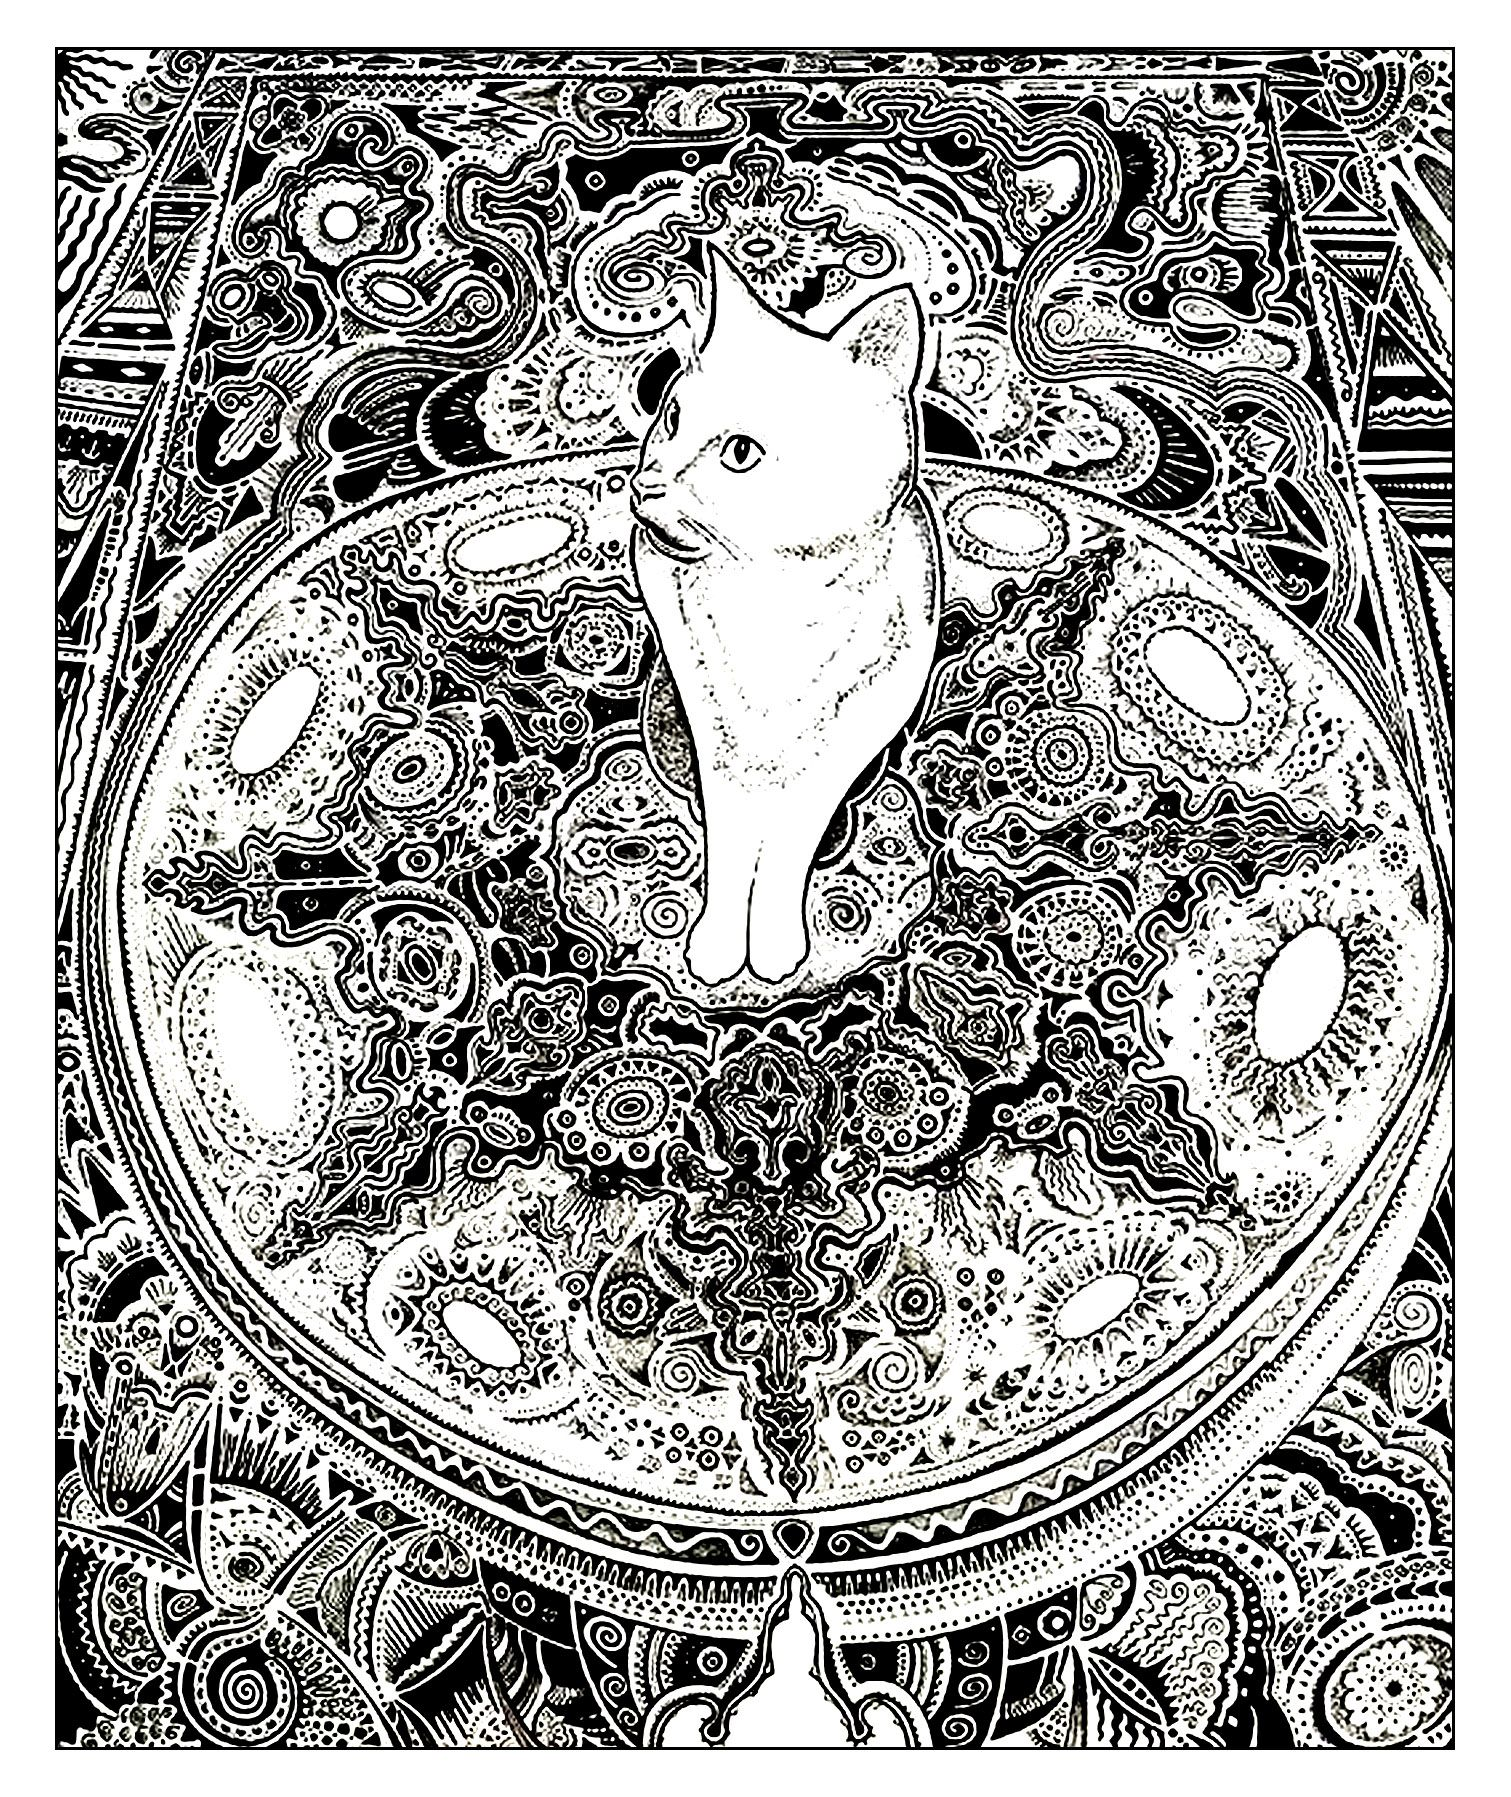 Galerie de coloriages gratuits coloriage adulte animaux chat tapis un chat sur un beau tapis - Chat a colorier adulte ...